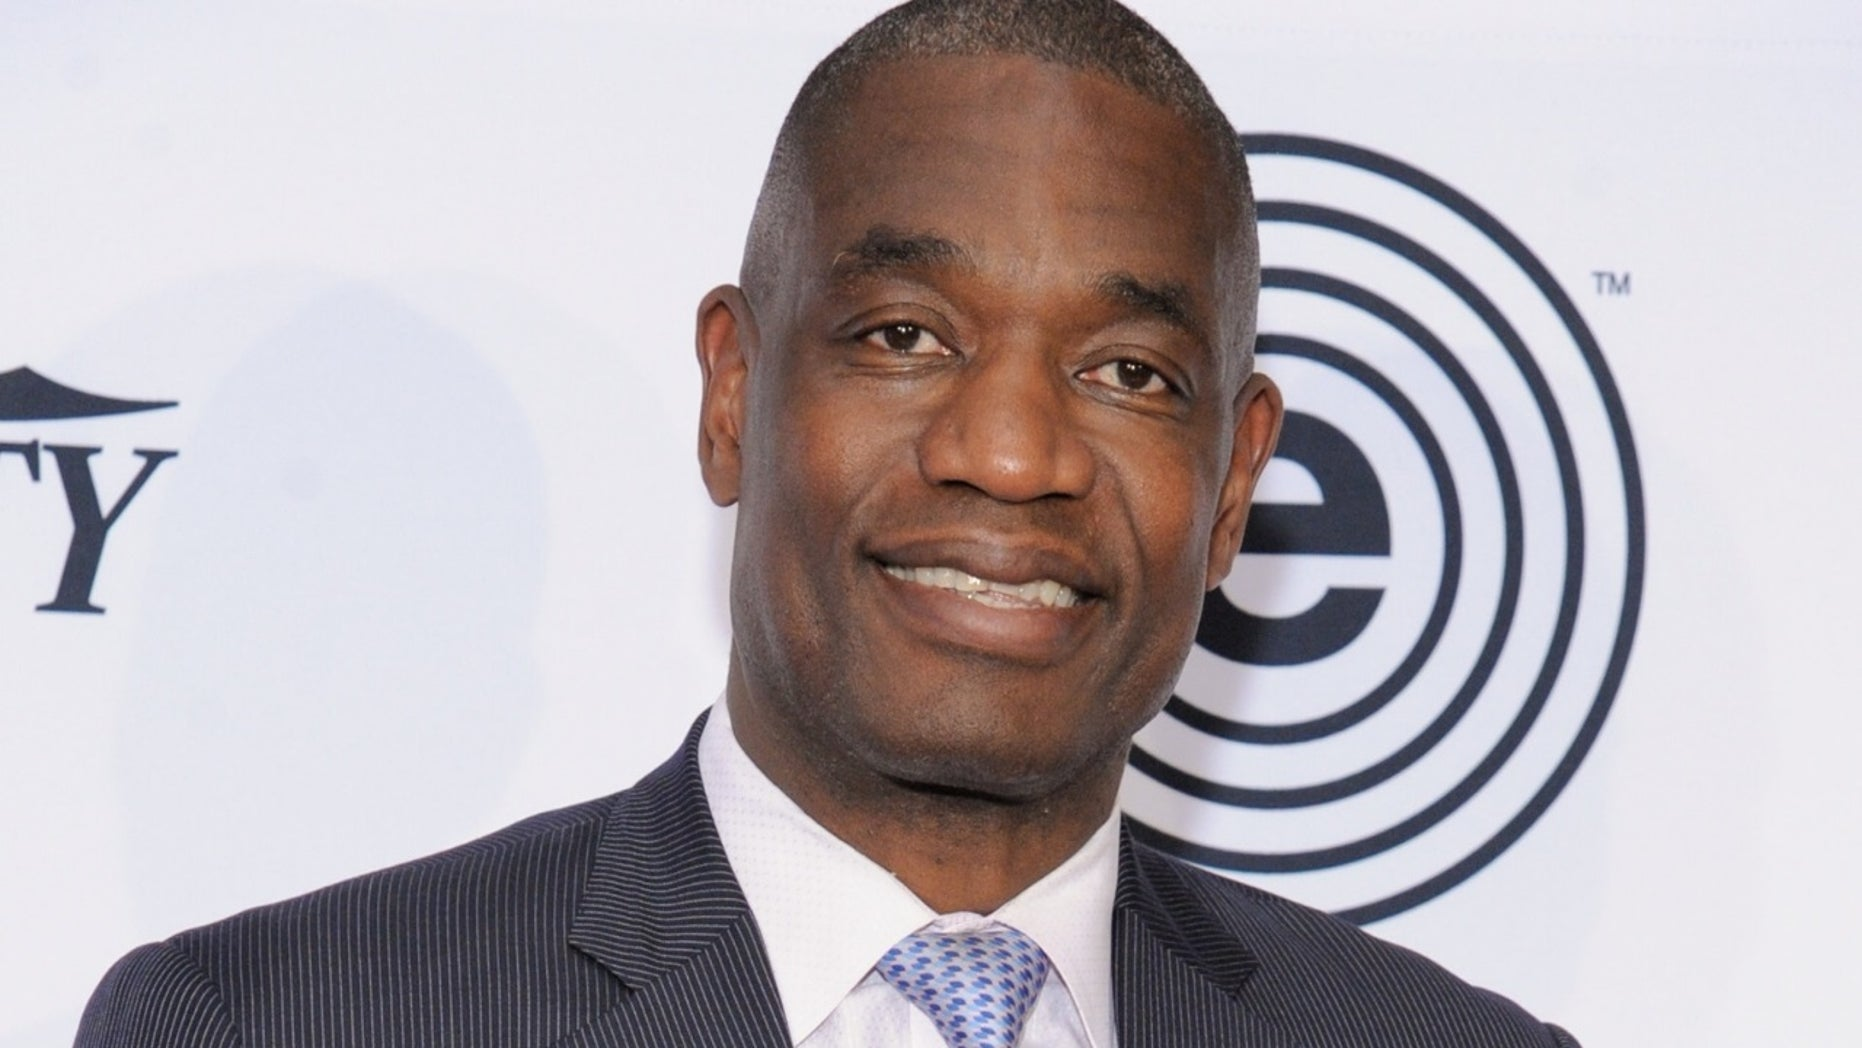 A boy NBA great Dikembe Mutombo helped bring to the U.S. for surgery died on Friday, his foundation said.